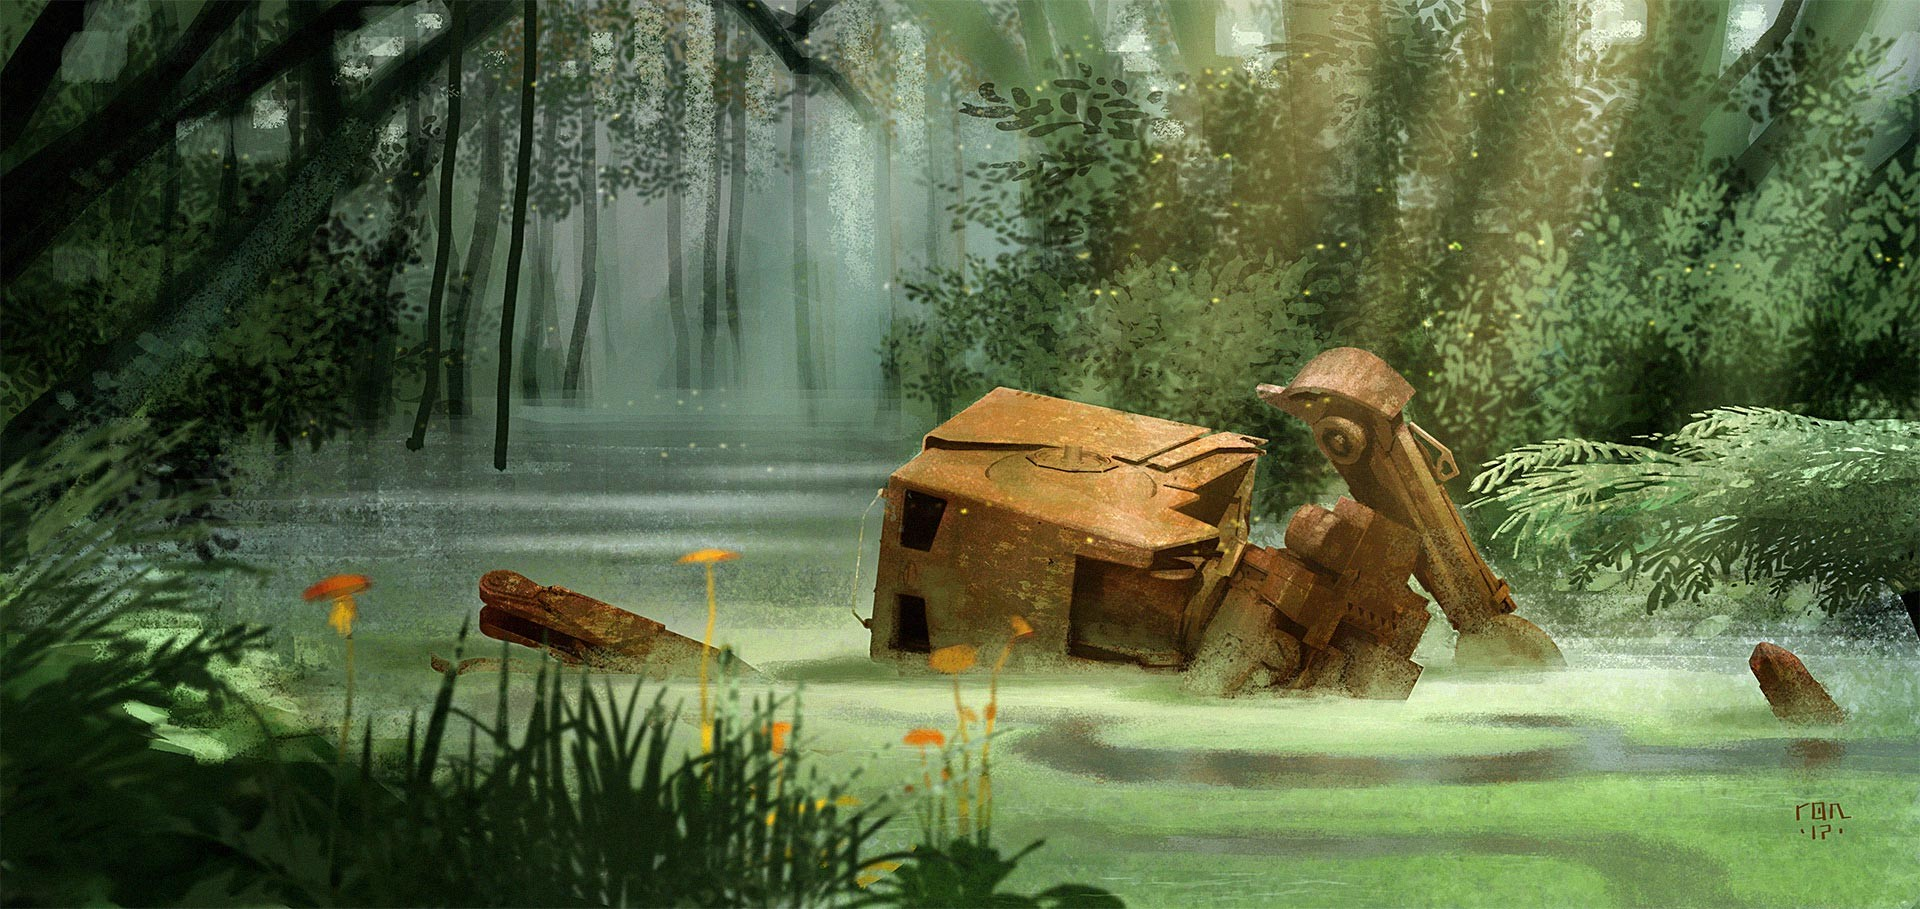 30 years after the battle of Endor.